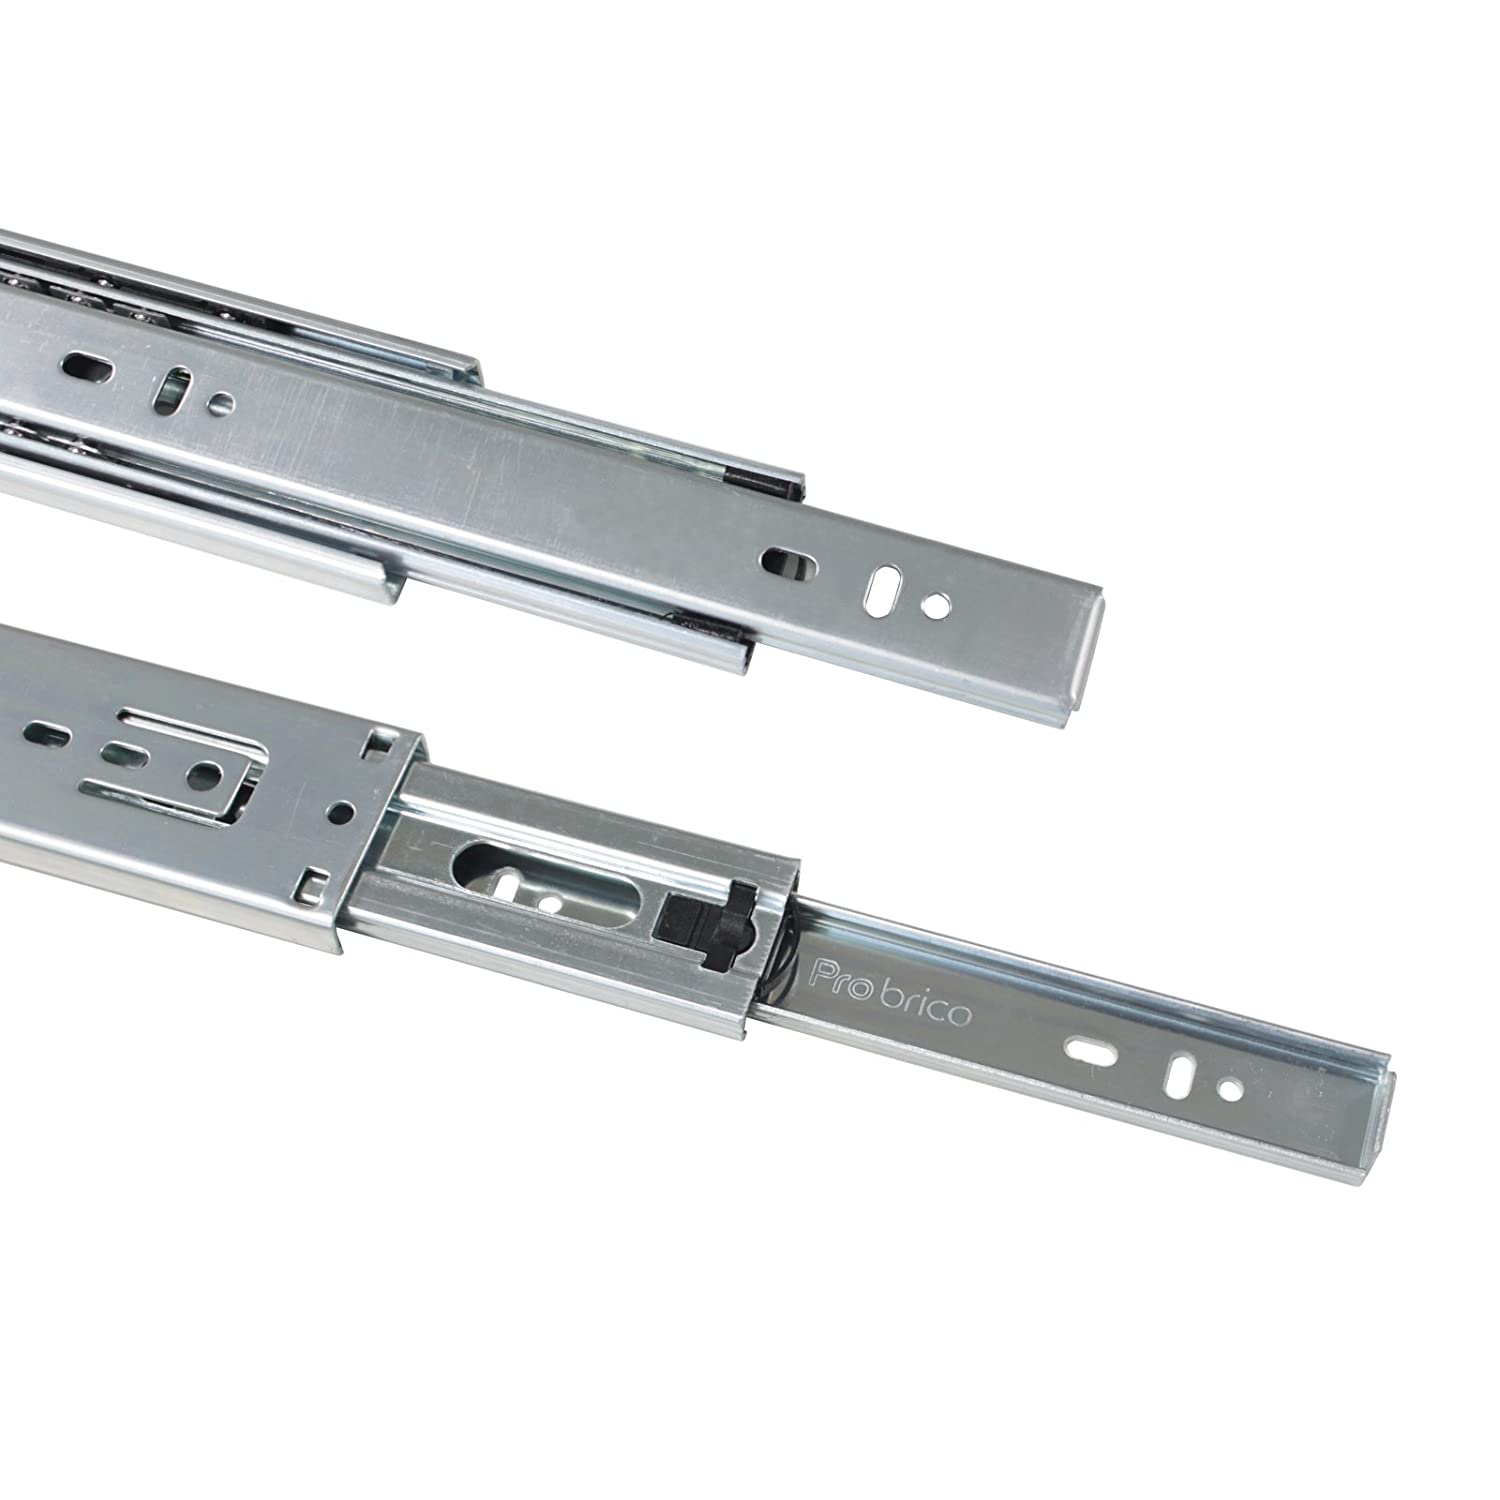 3Pair Gobrico 20-Inch Soft Close Full Extension Ball Bearing Rear Mount Drawer Slides with Brackets